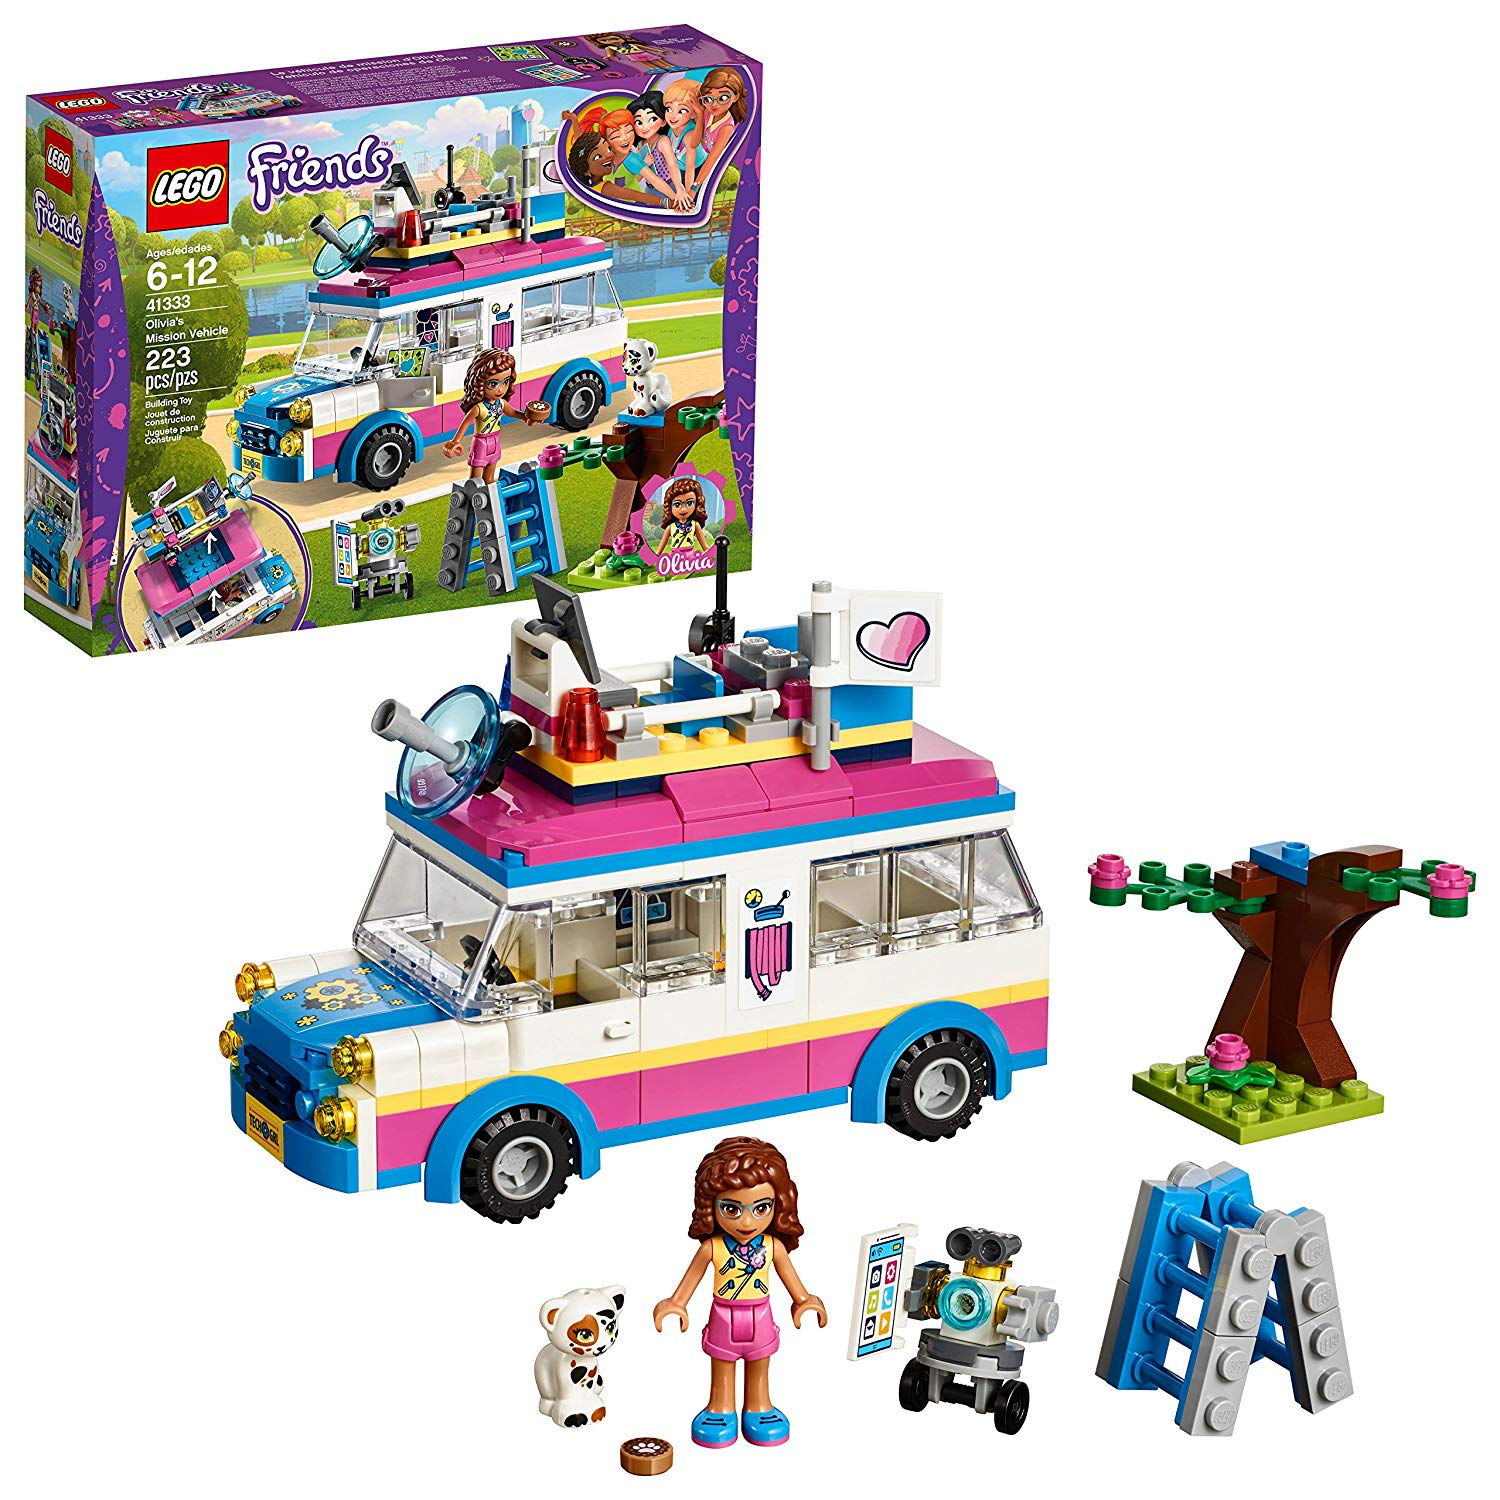 LEGO Friends Olivia's Mission Vehicle ONLY $13.48 (Reg. $20)